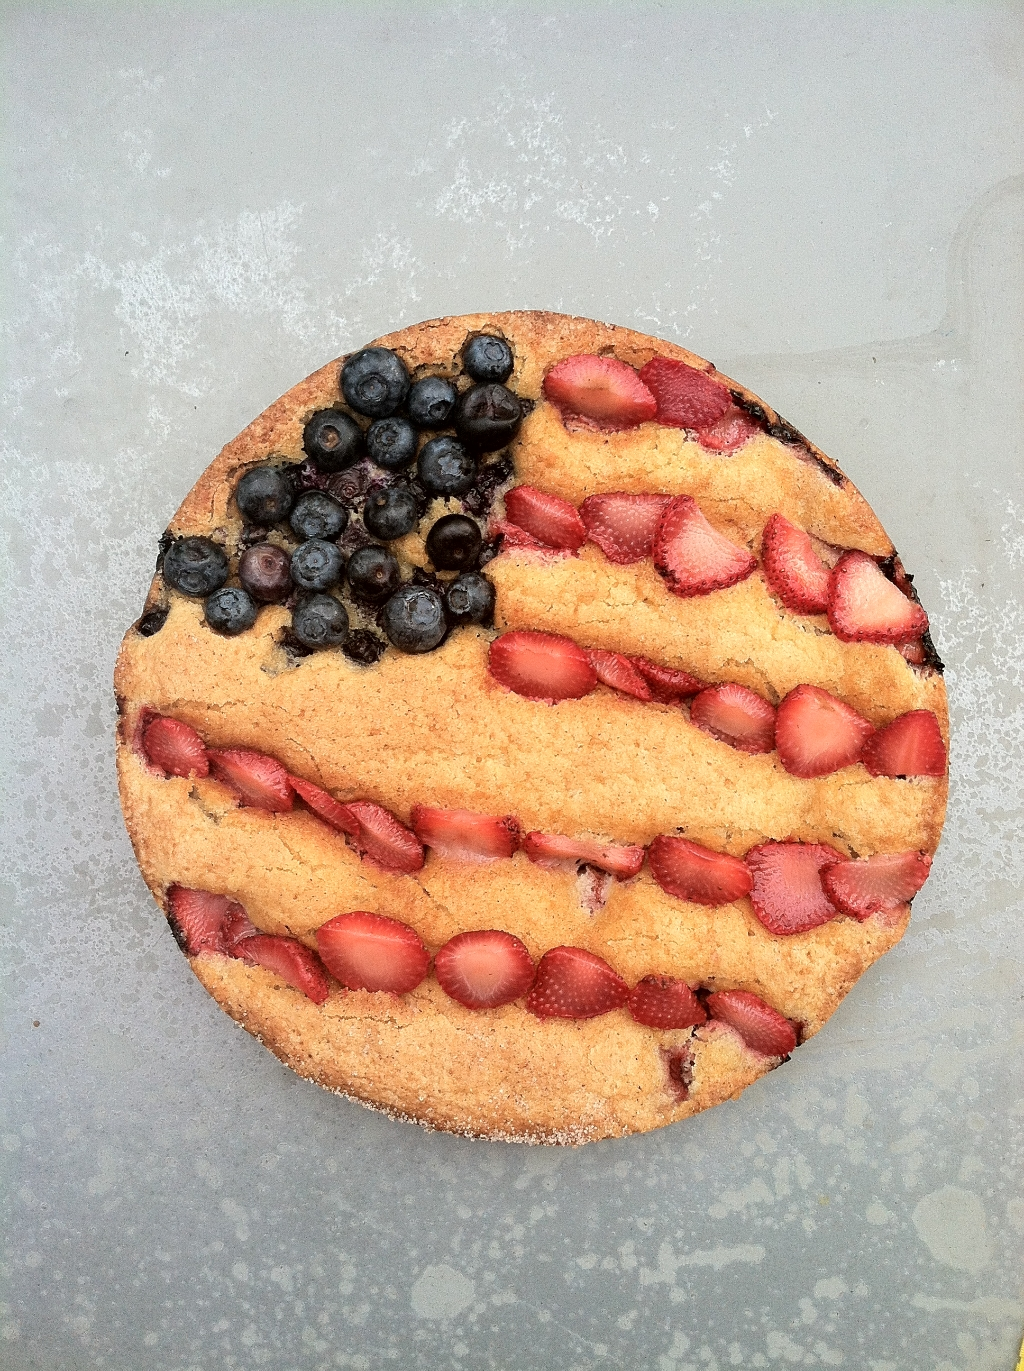 Patriotic Fruit Torte flag strawberries blueberries Magnolia Bakery vanilla whipped cream 4th of July